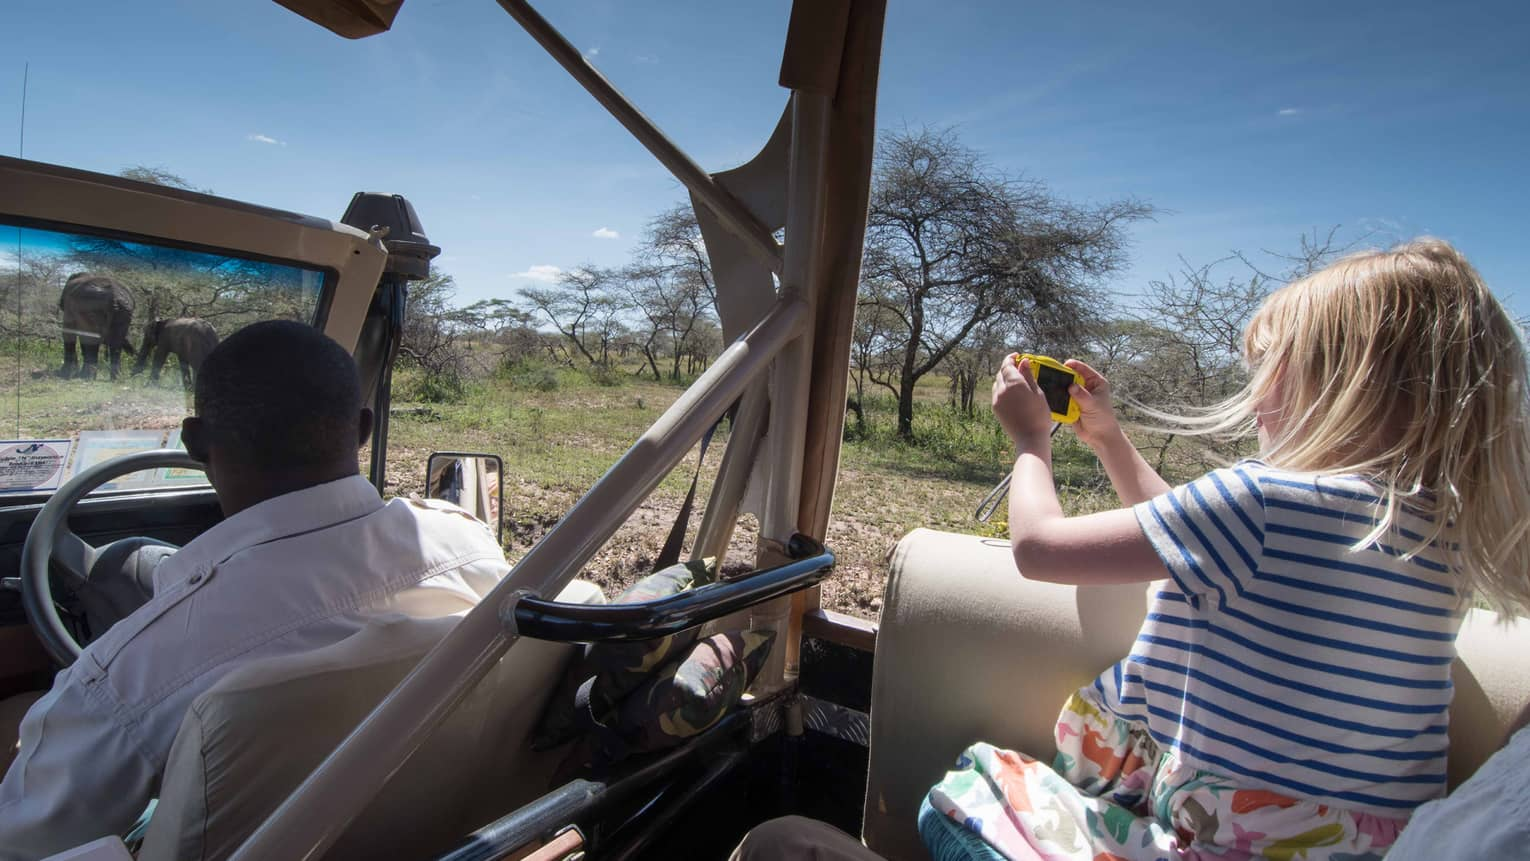 Young girl takes photos of elephants from backseat of safari Jeep